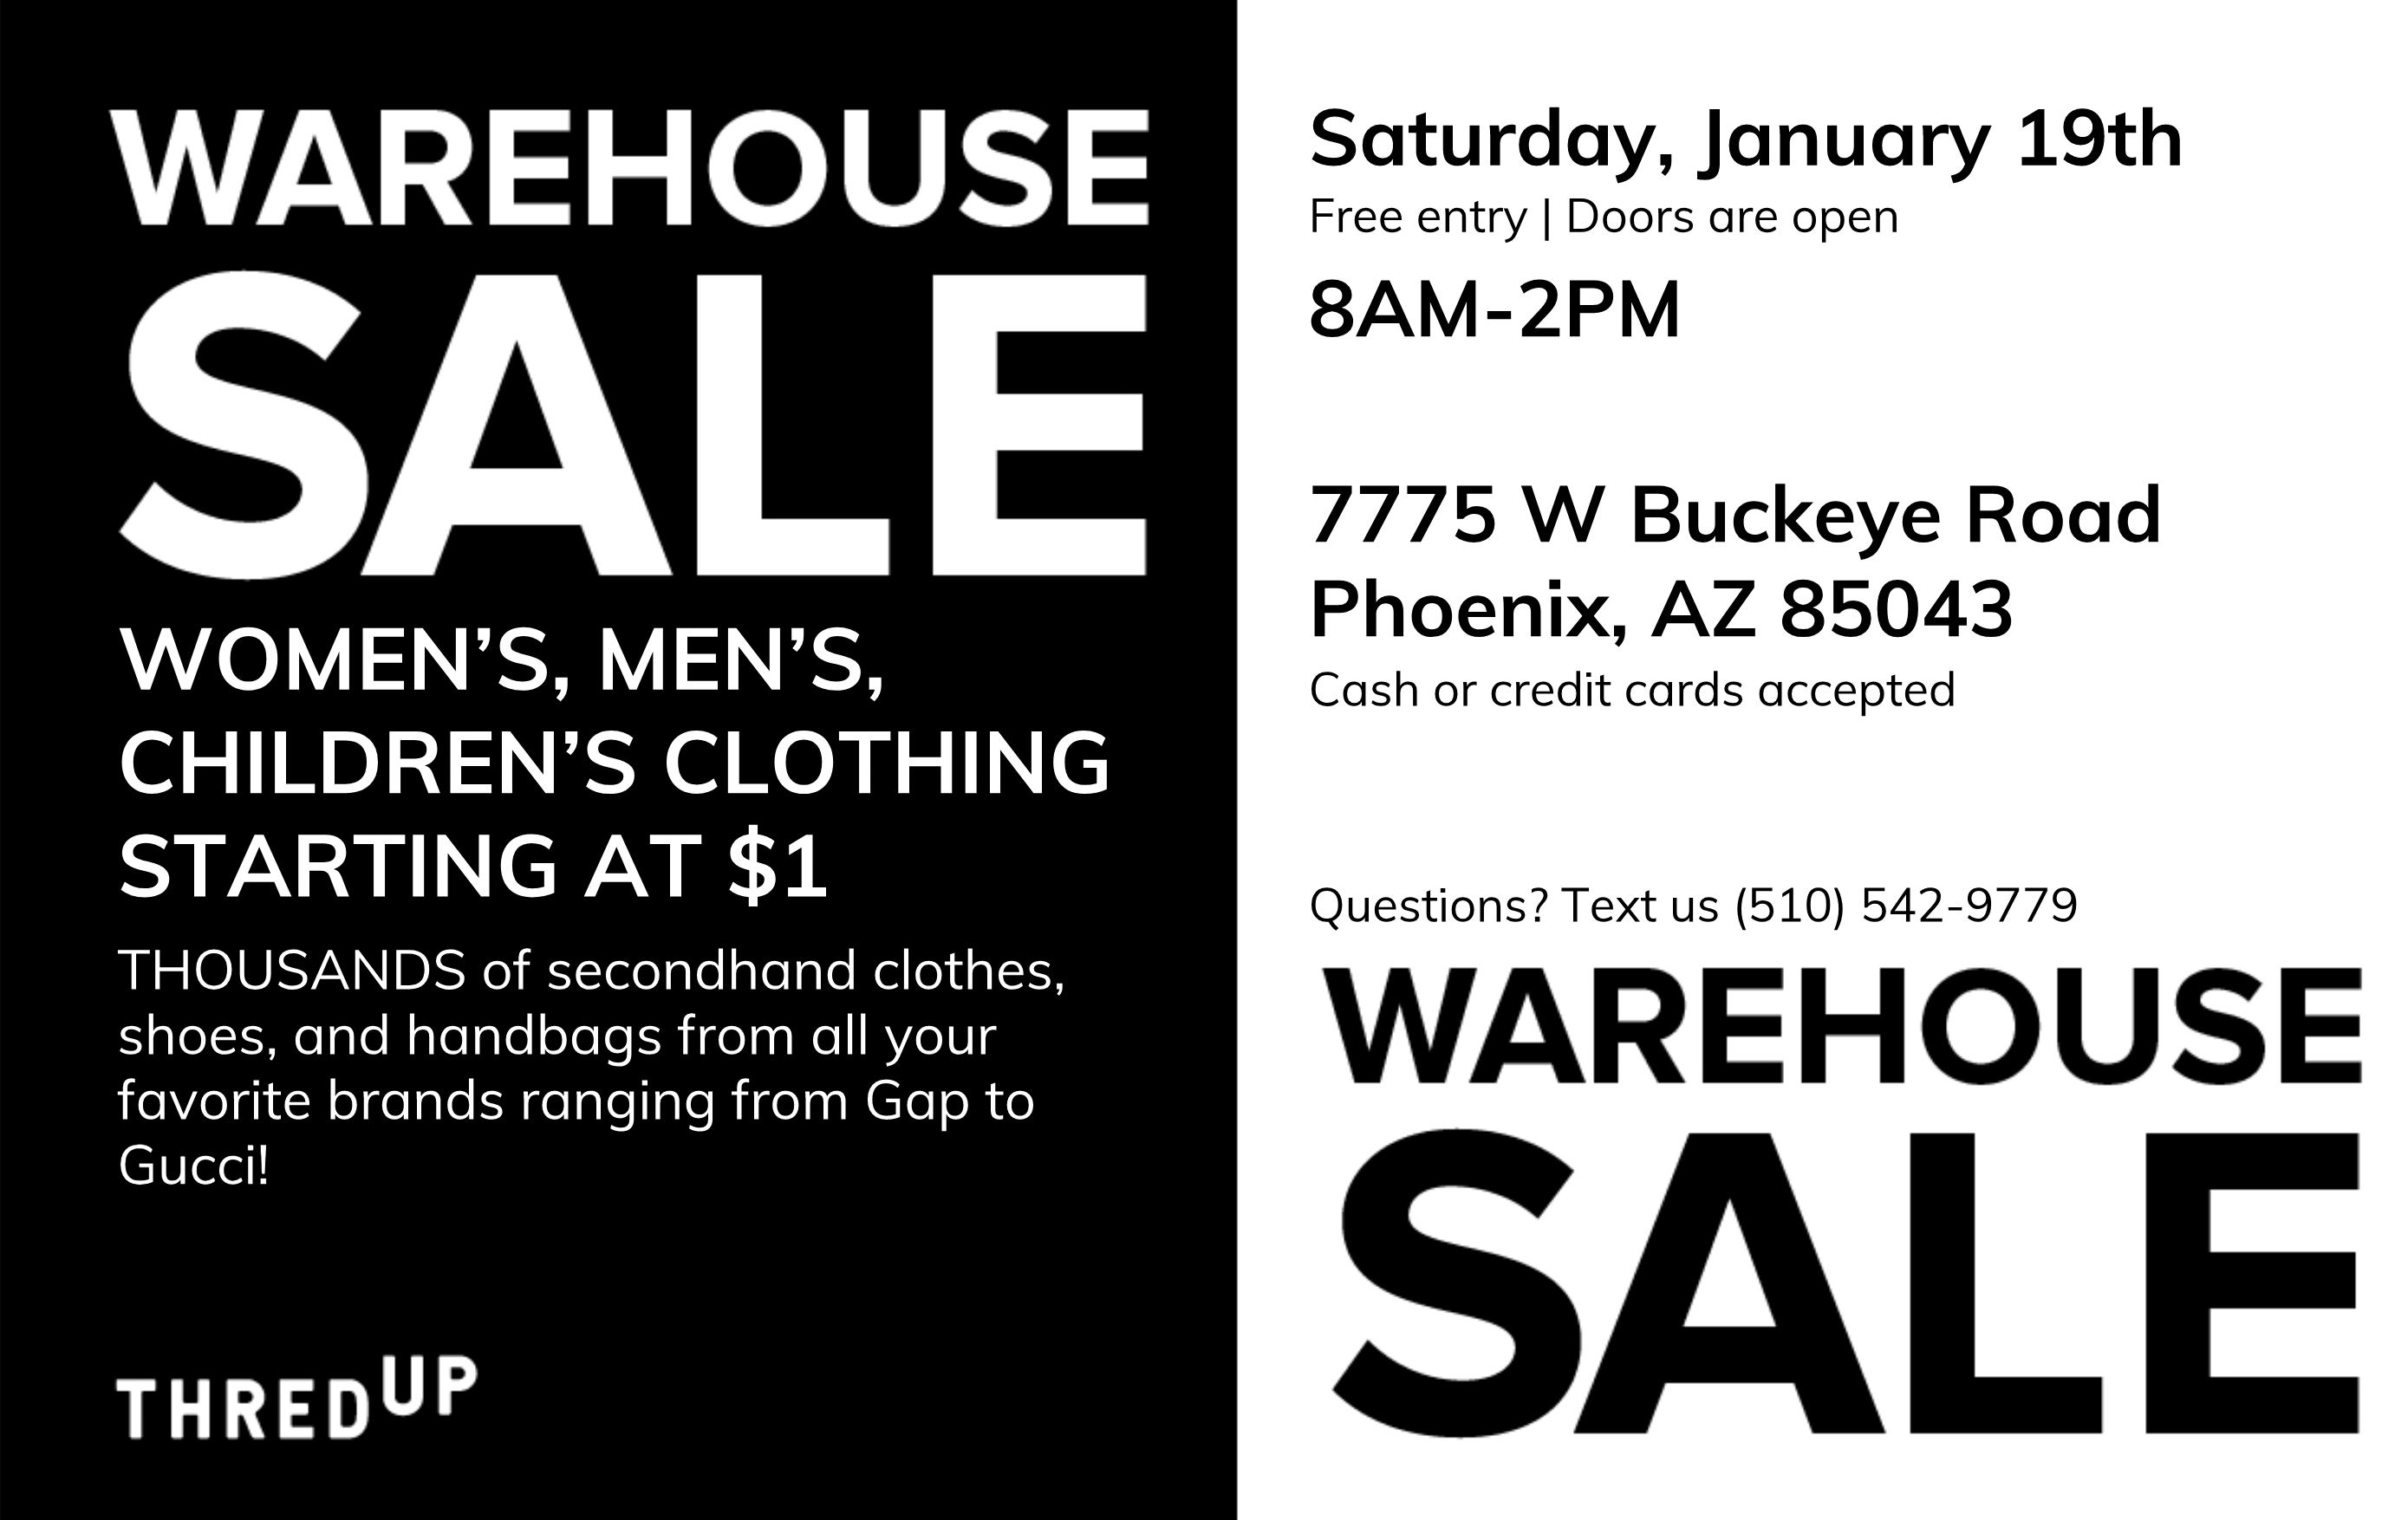 GIANT 2nd Hand Apparel Warehouse Sale